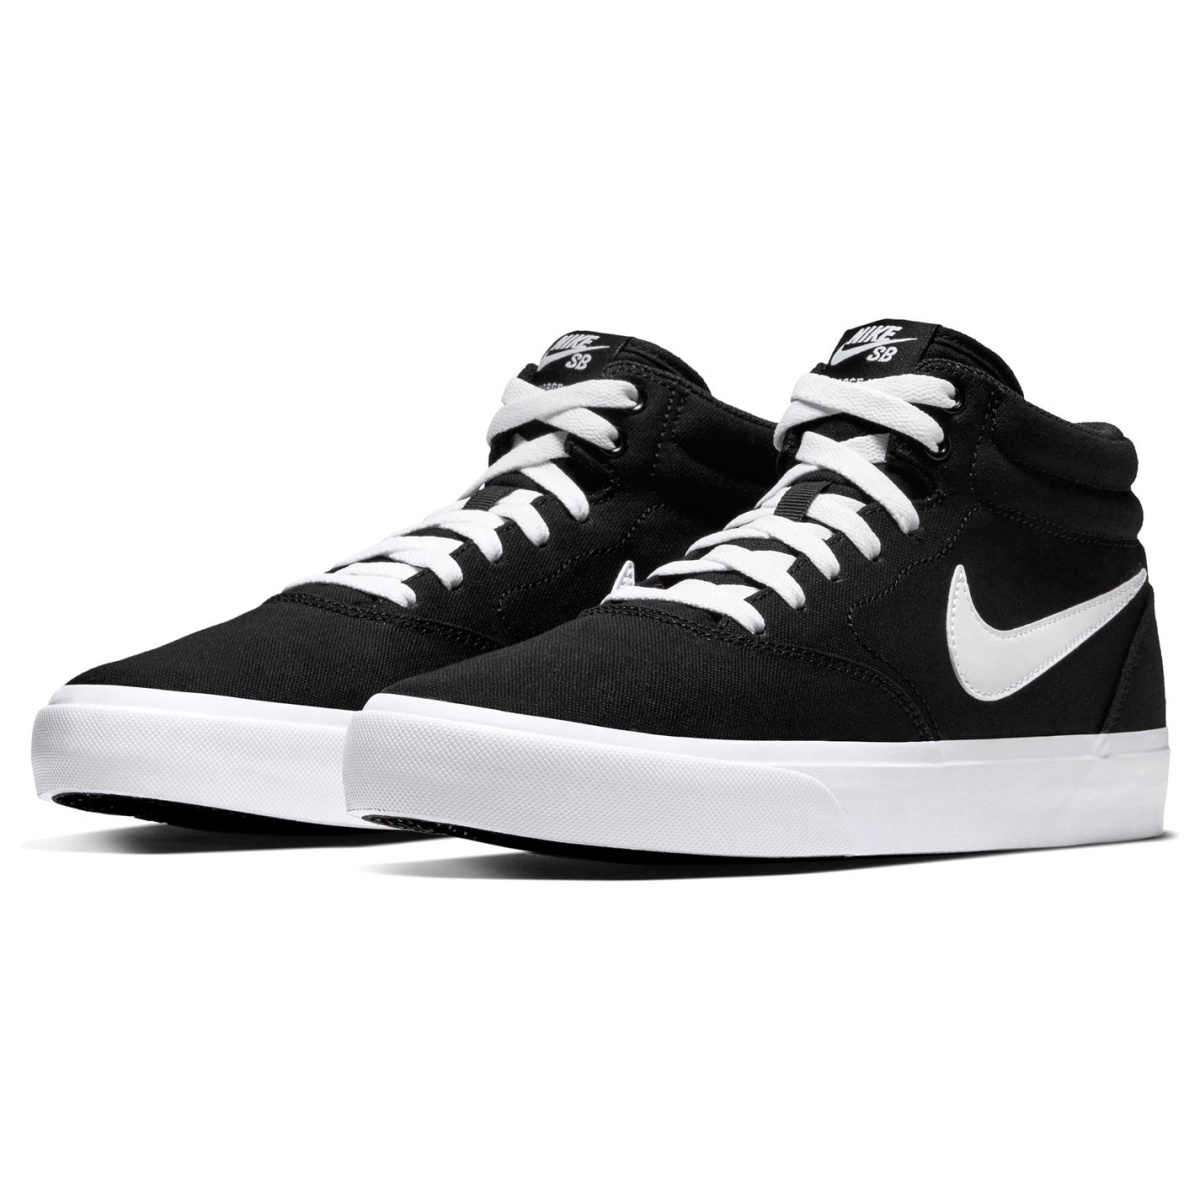 Nike-SB-Lot-Mid-Hommes-Skate-Chaussures-Skater-Chaussures-Chaussures-De-Sport-Toile-2017 miniature 3